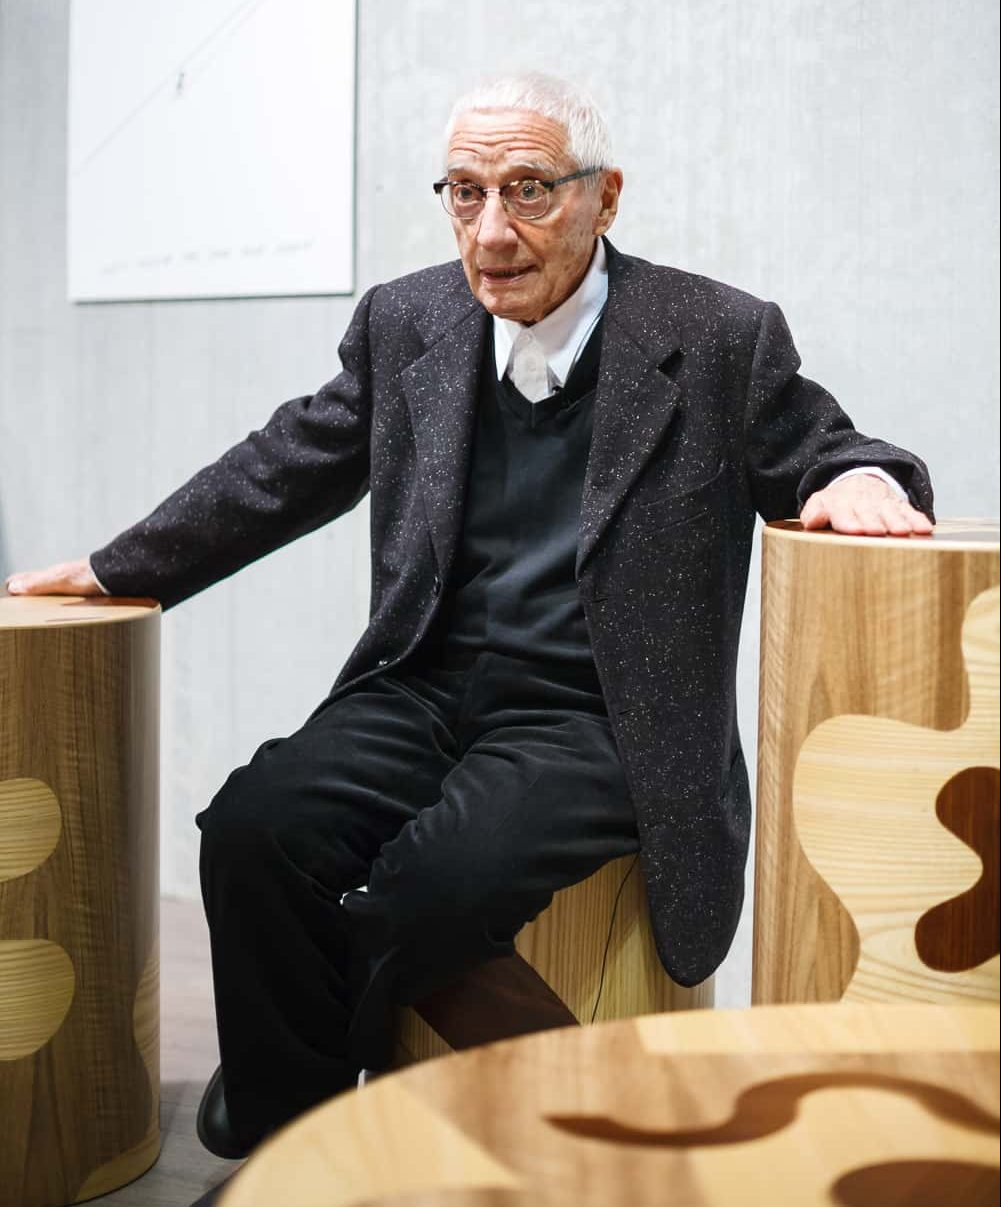 Alessandro Mendini with the Do ro ta collection- styylish